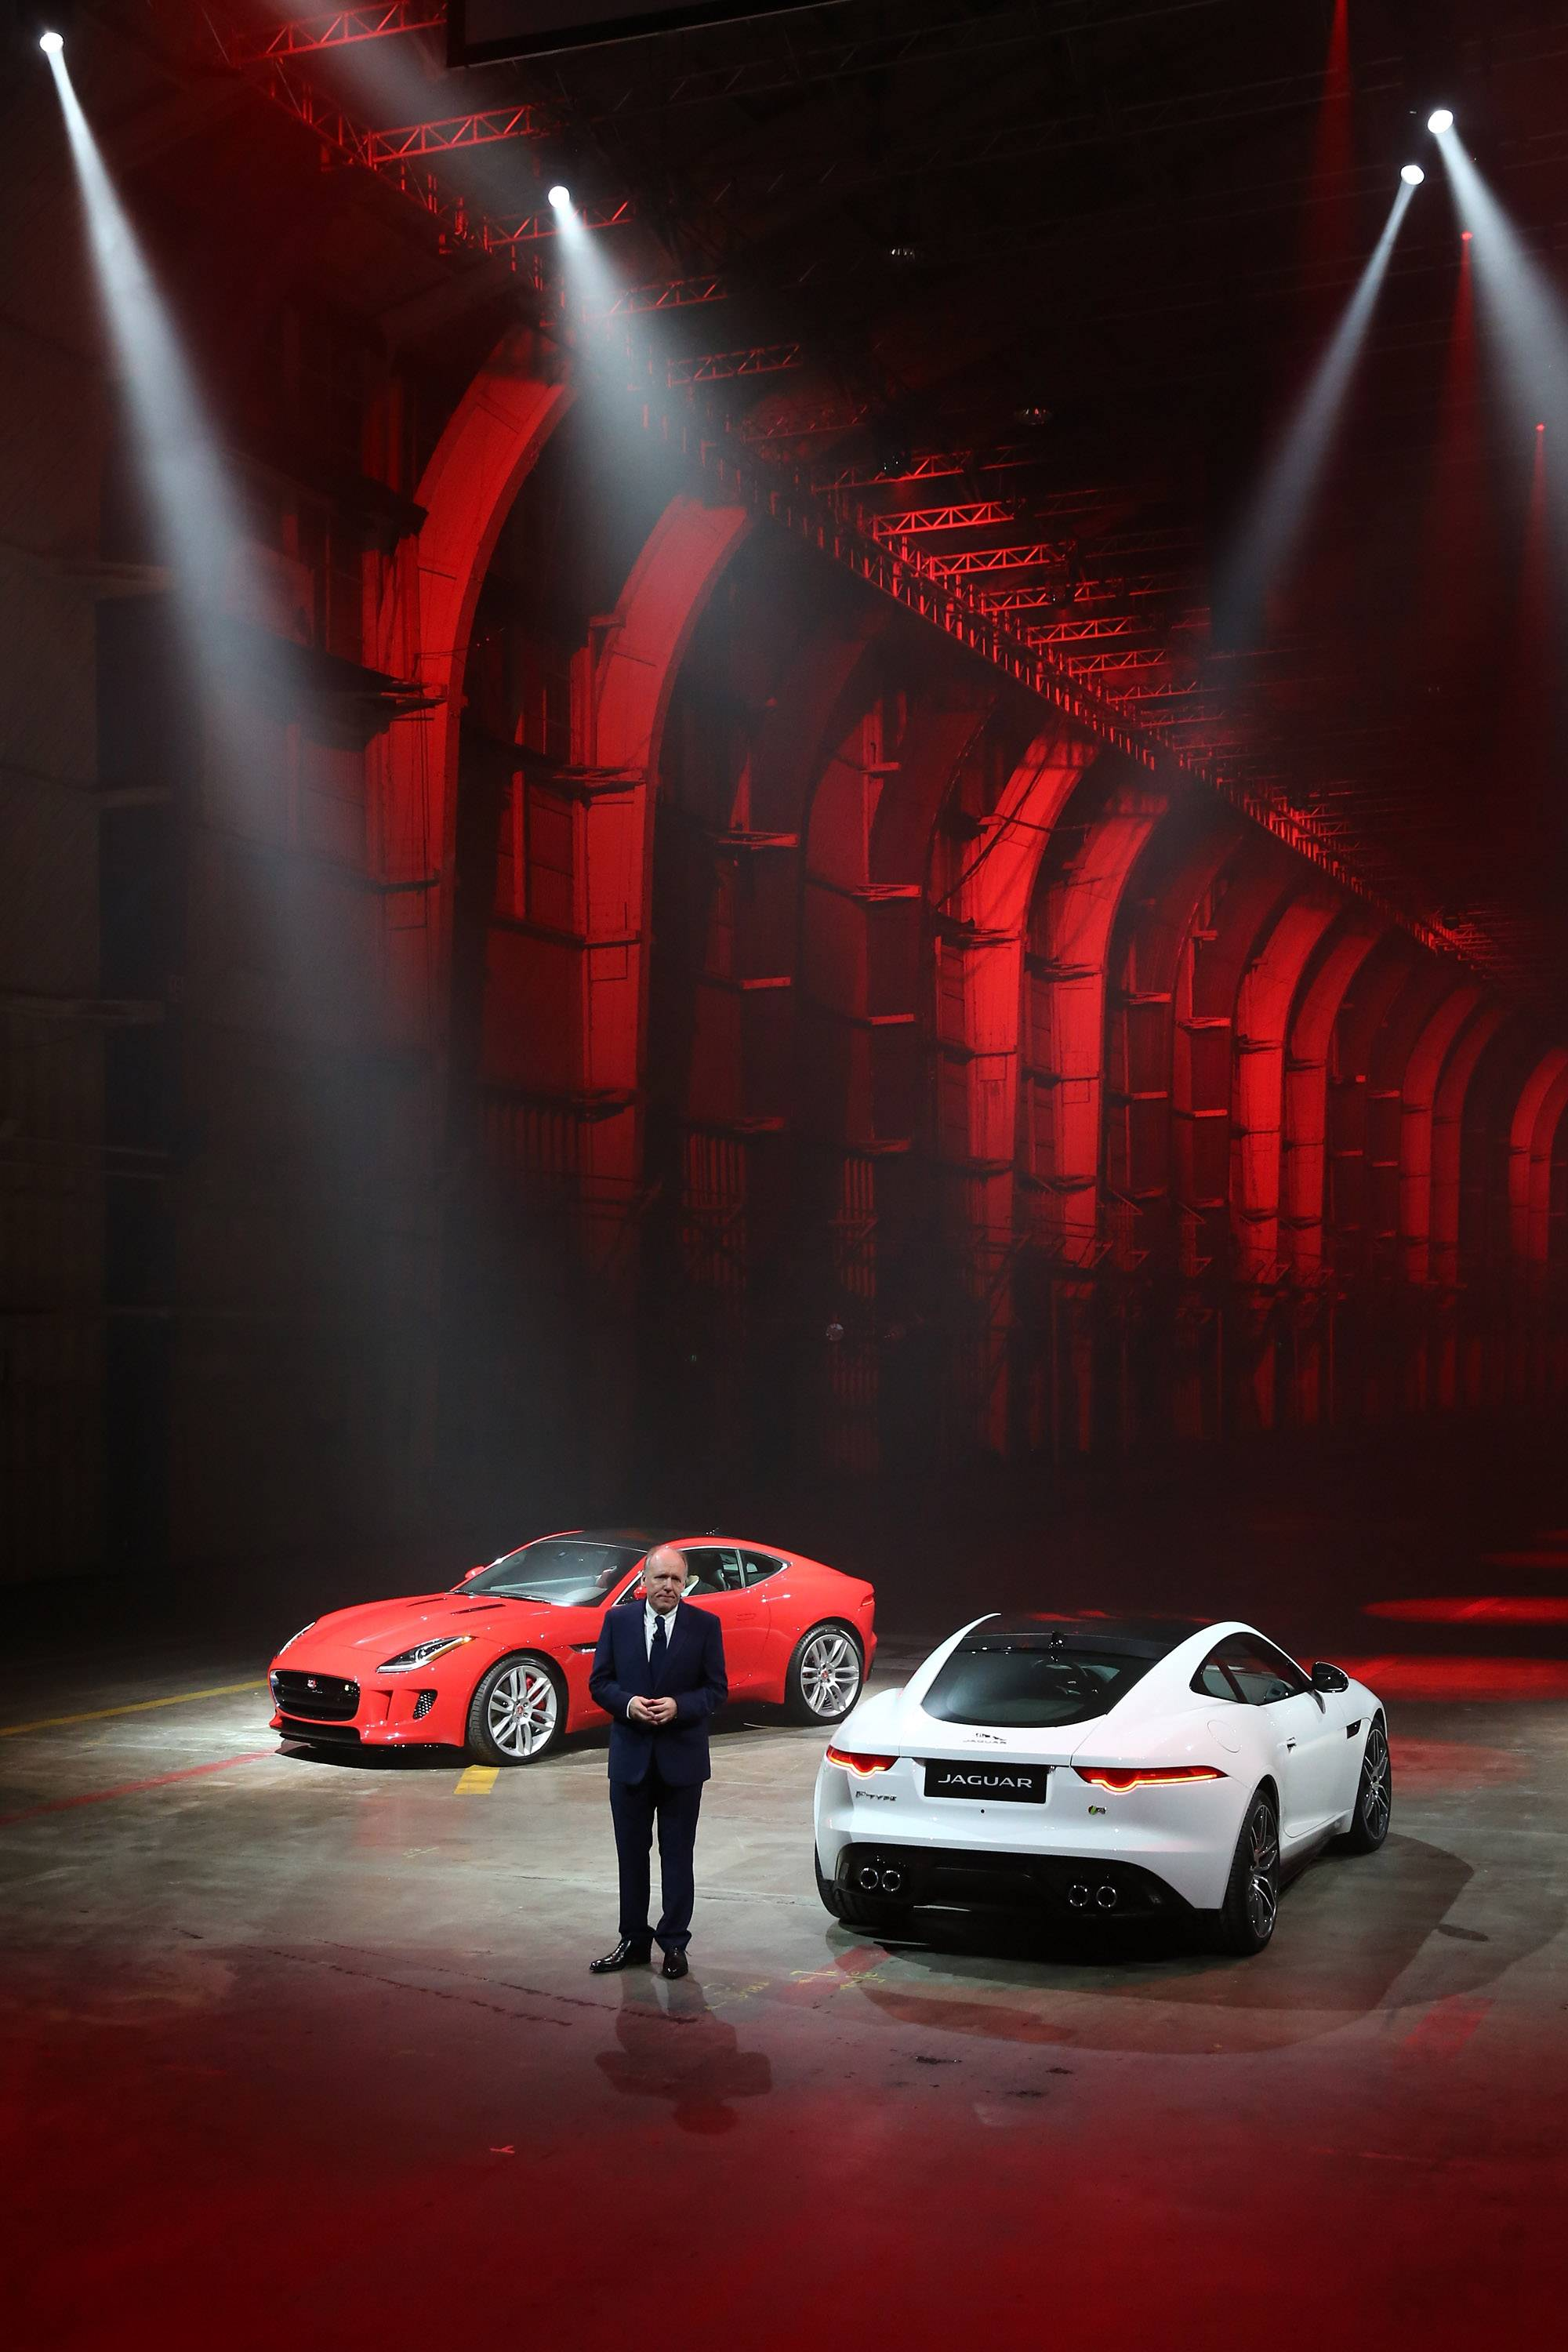 The All New Jaguar F-TYPE Coupe Makes High-Speed Debut At Exclusive VIP Event In LA